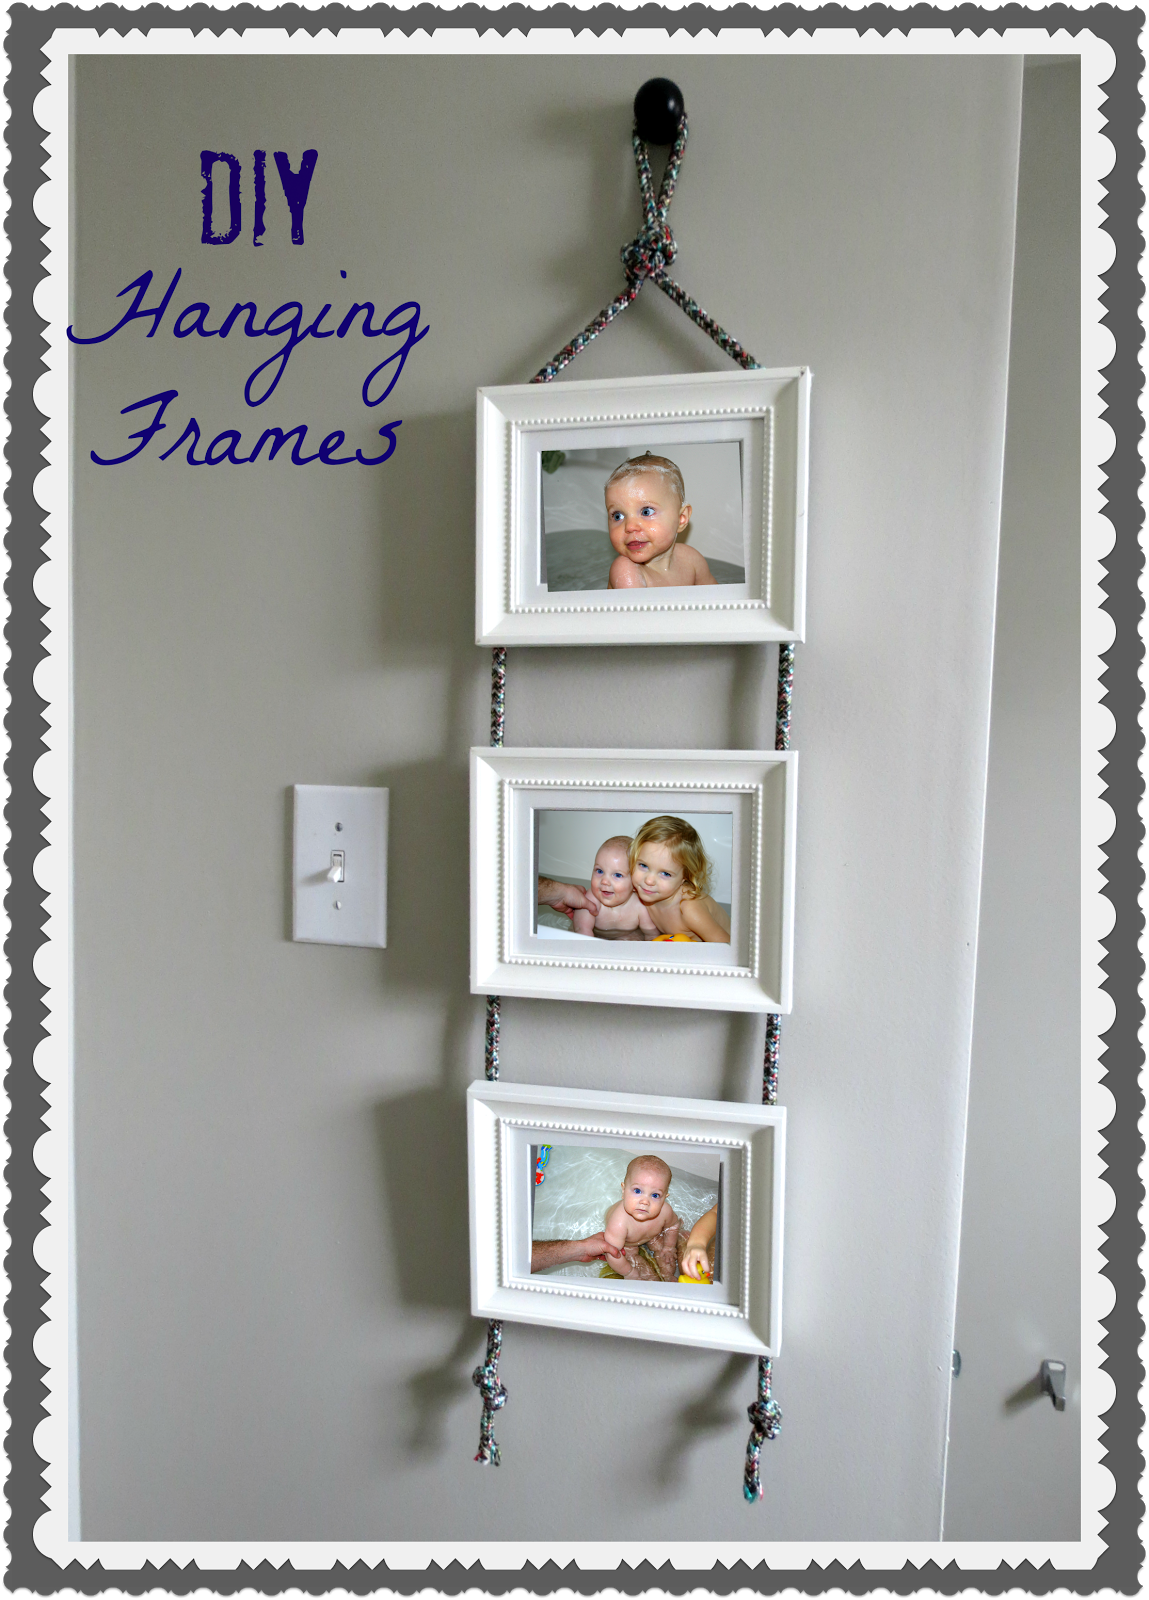 Diy hanging frames tutorial tatertots and jello - Wall hanging ideas ...